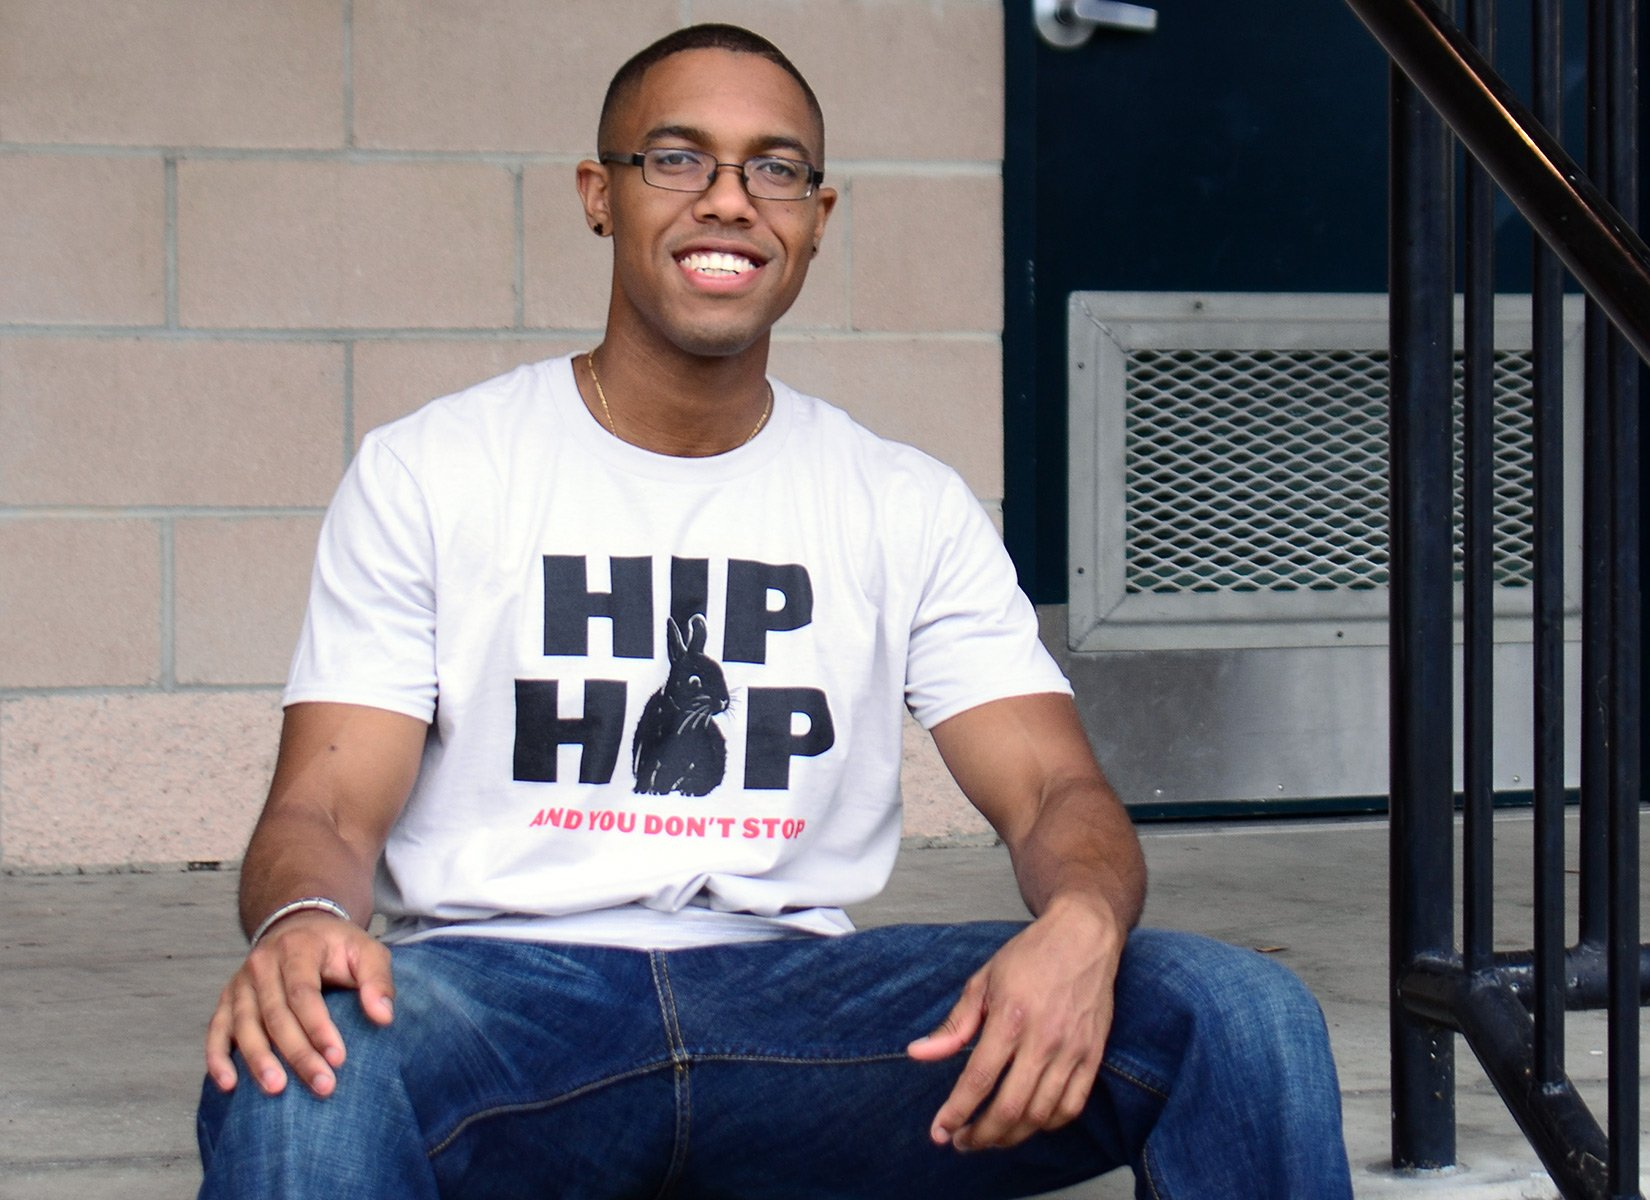 Hip Hop And You Don't Stop on Mens T-Shirt